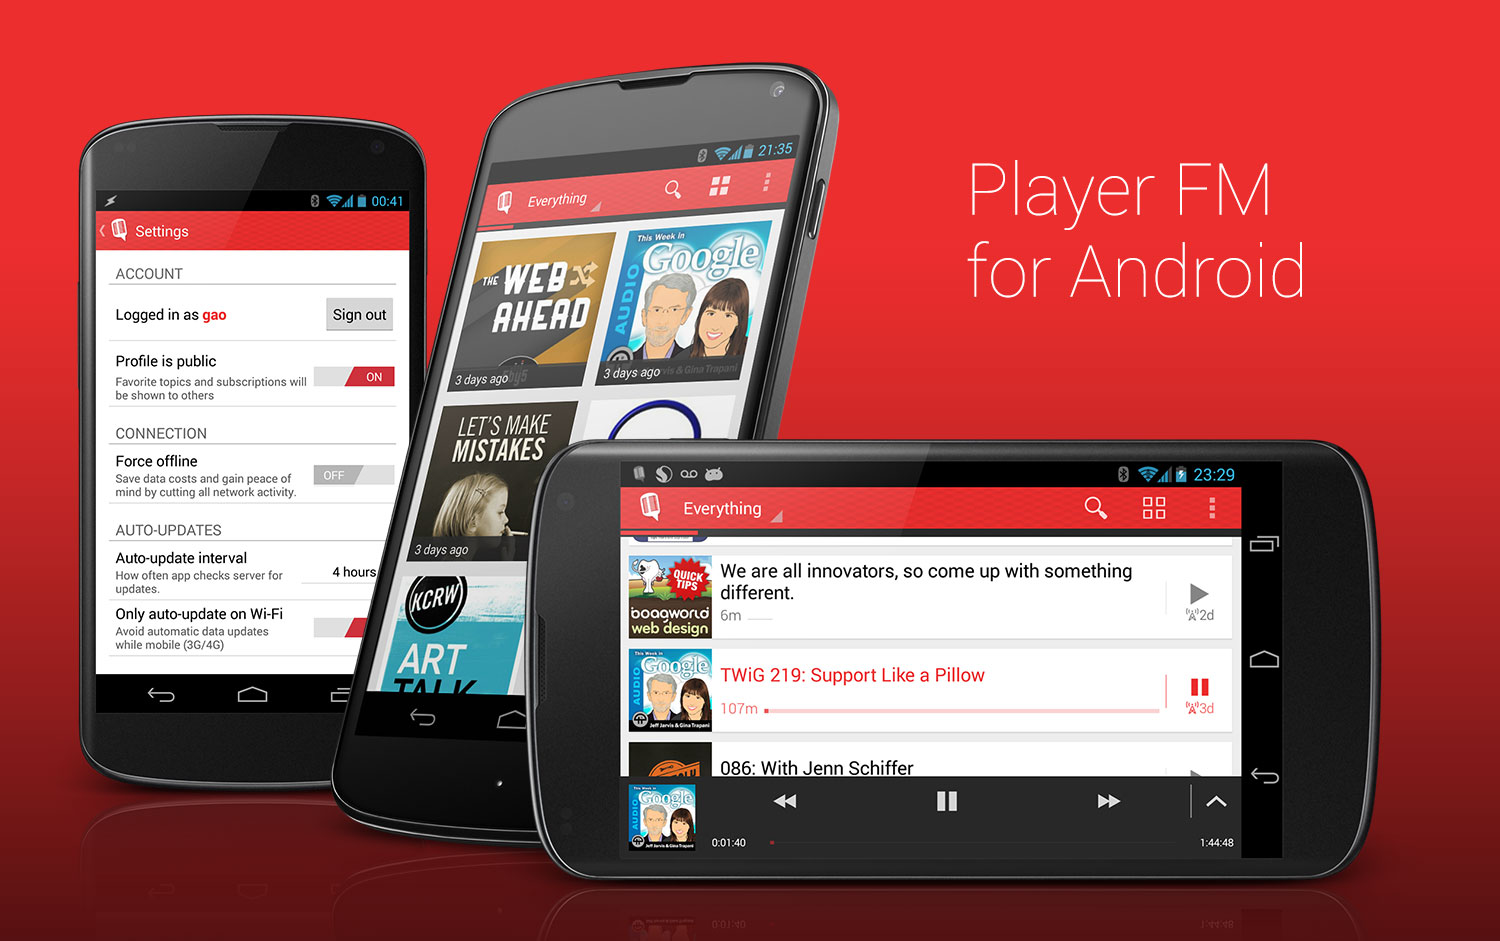 Player FM for Android UI design